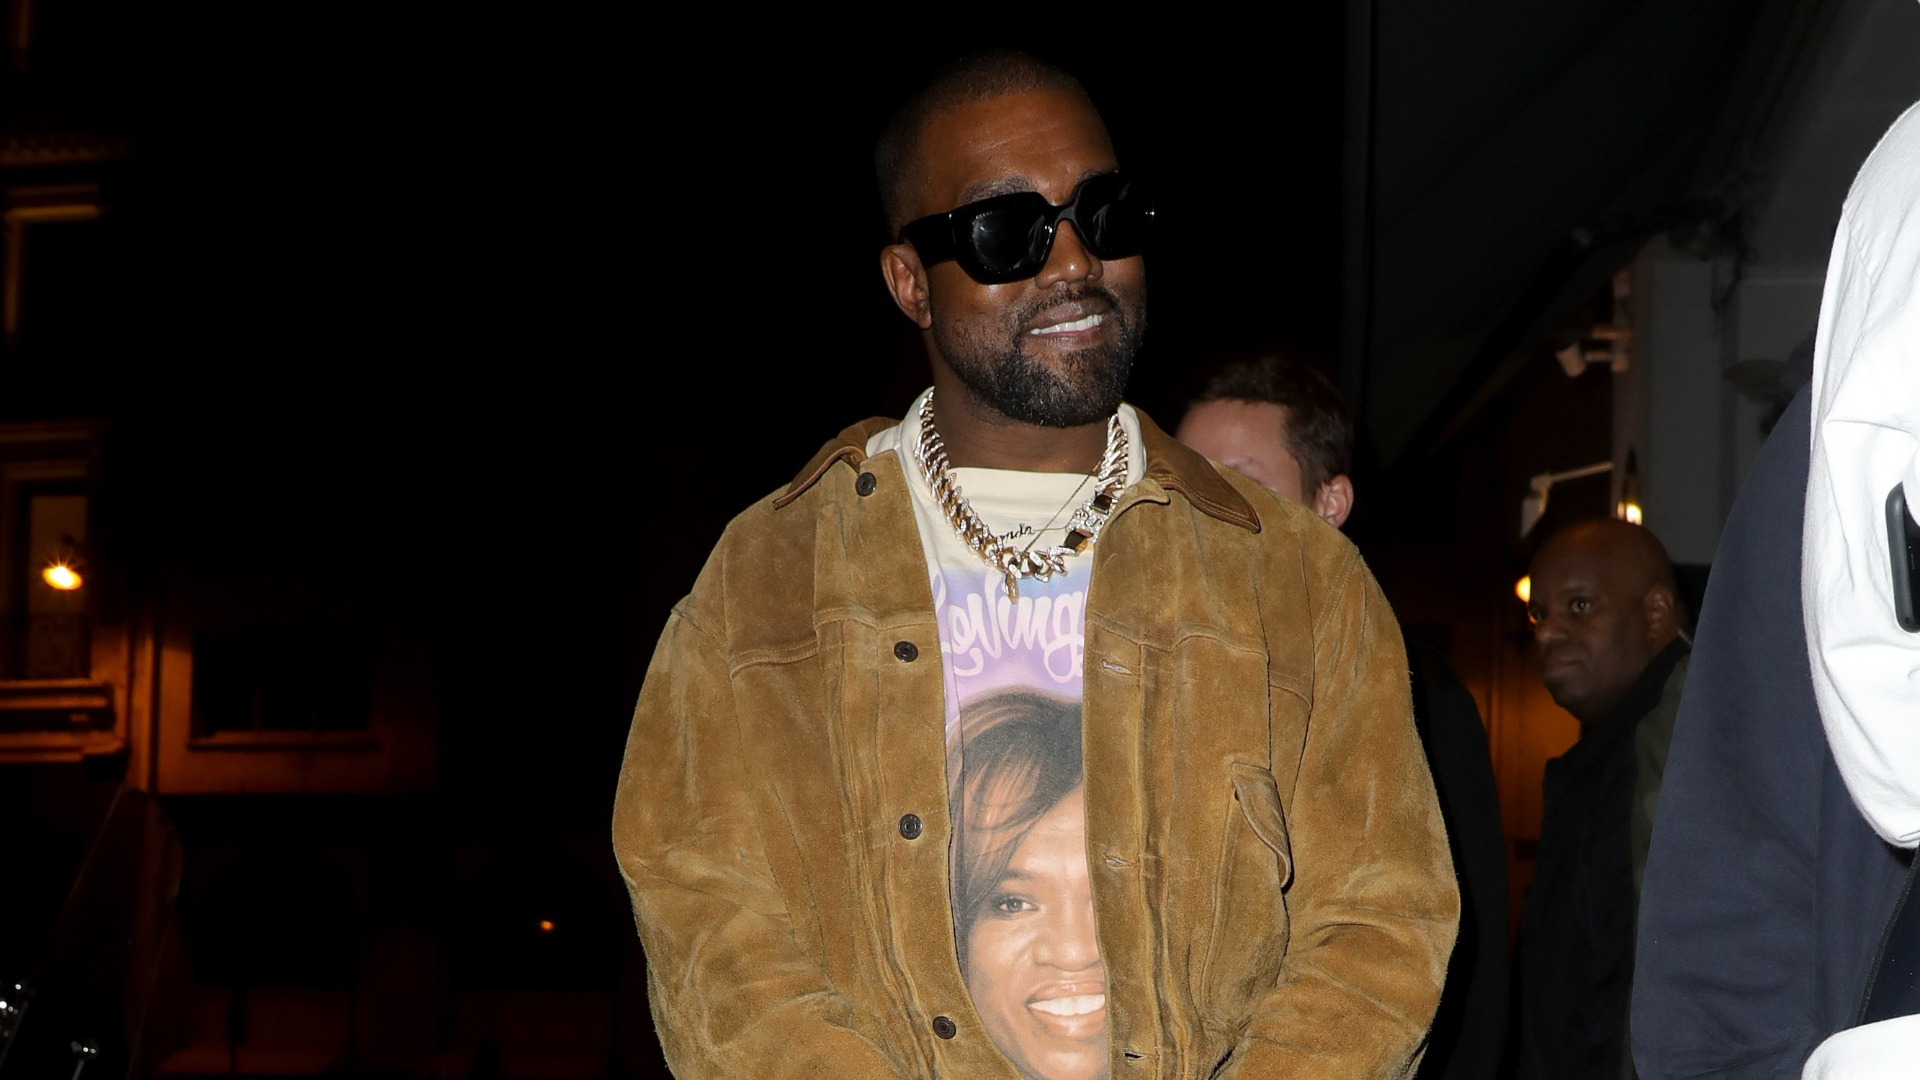 Kanye West Says He's Voting for Trump in 2020 in Rare Interview